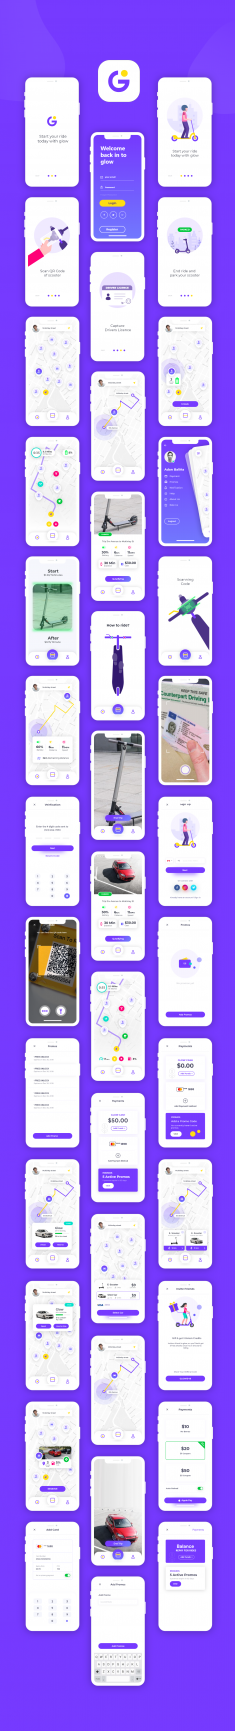 Glow Scooter Rent App Design